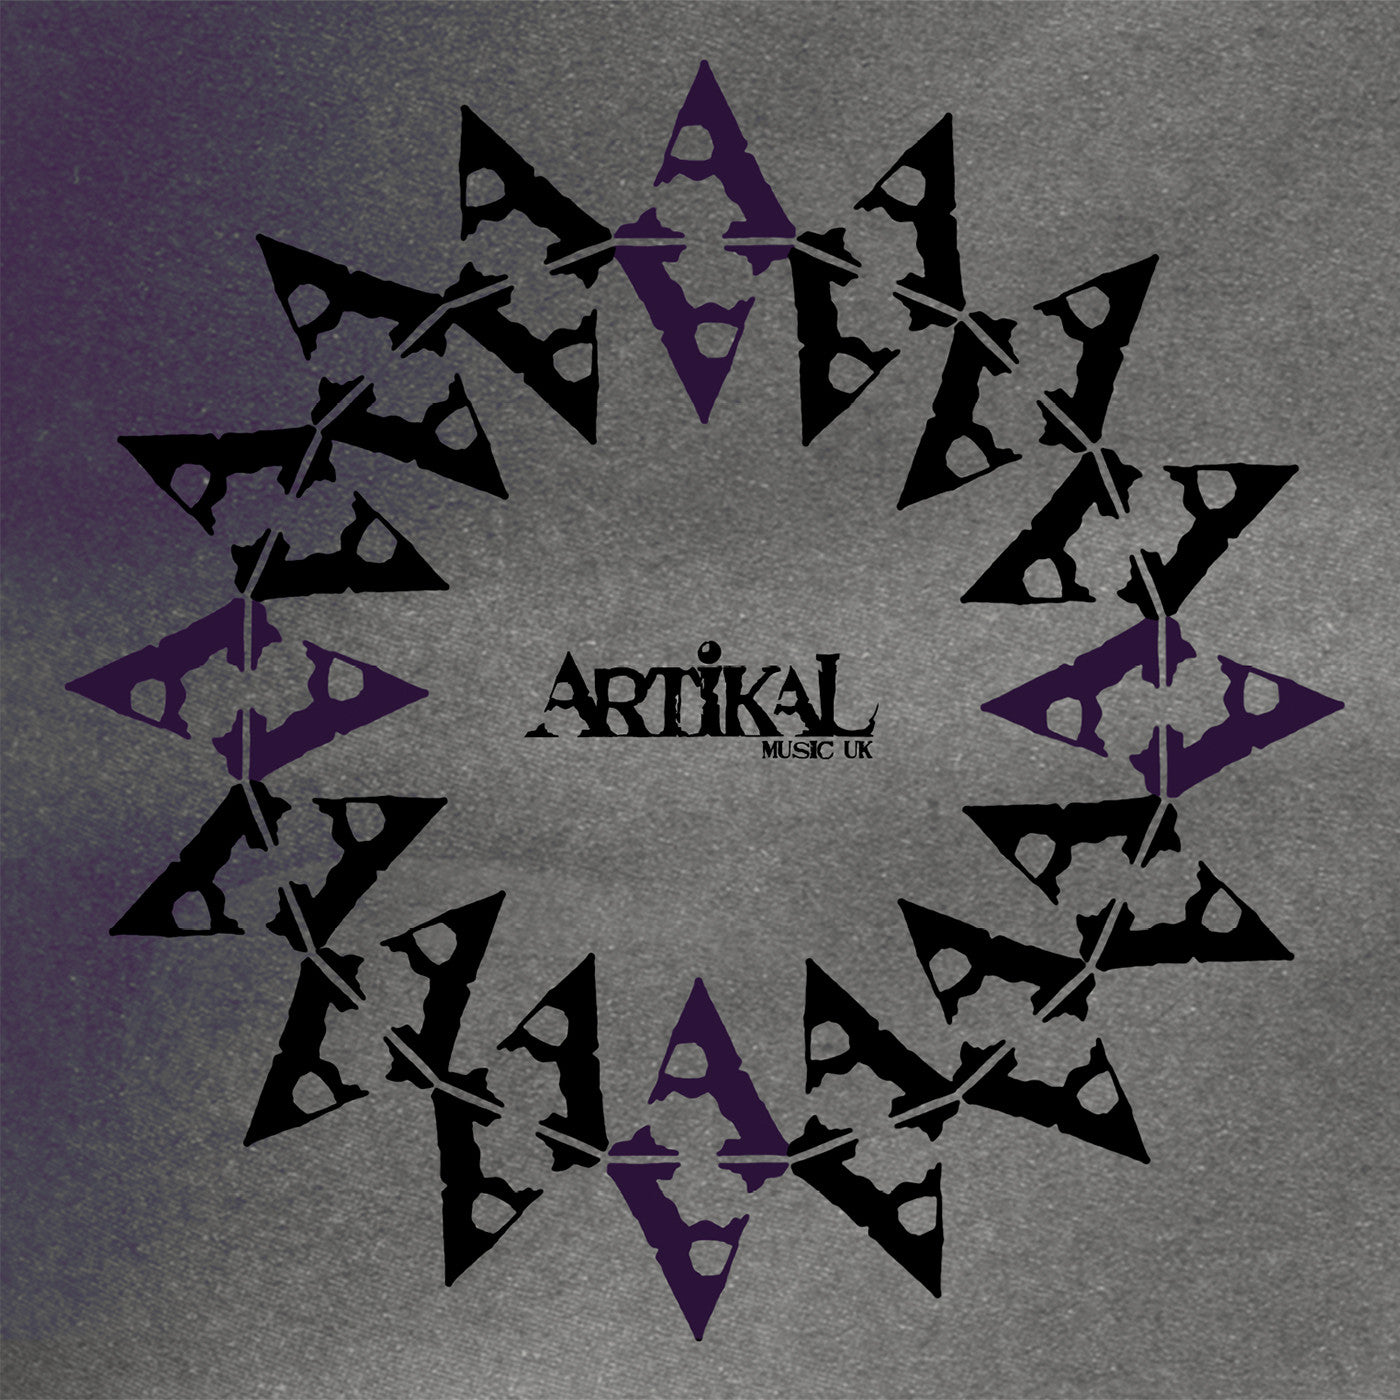 Artikal - The Compilation (Vinyl Album Sampler 2) - Unearthed Sounds